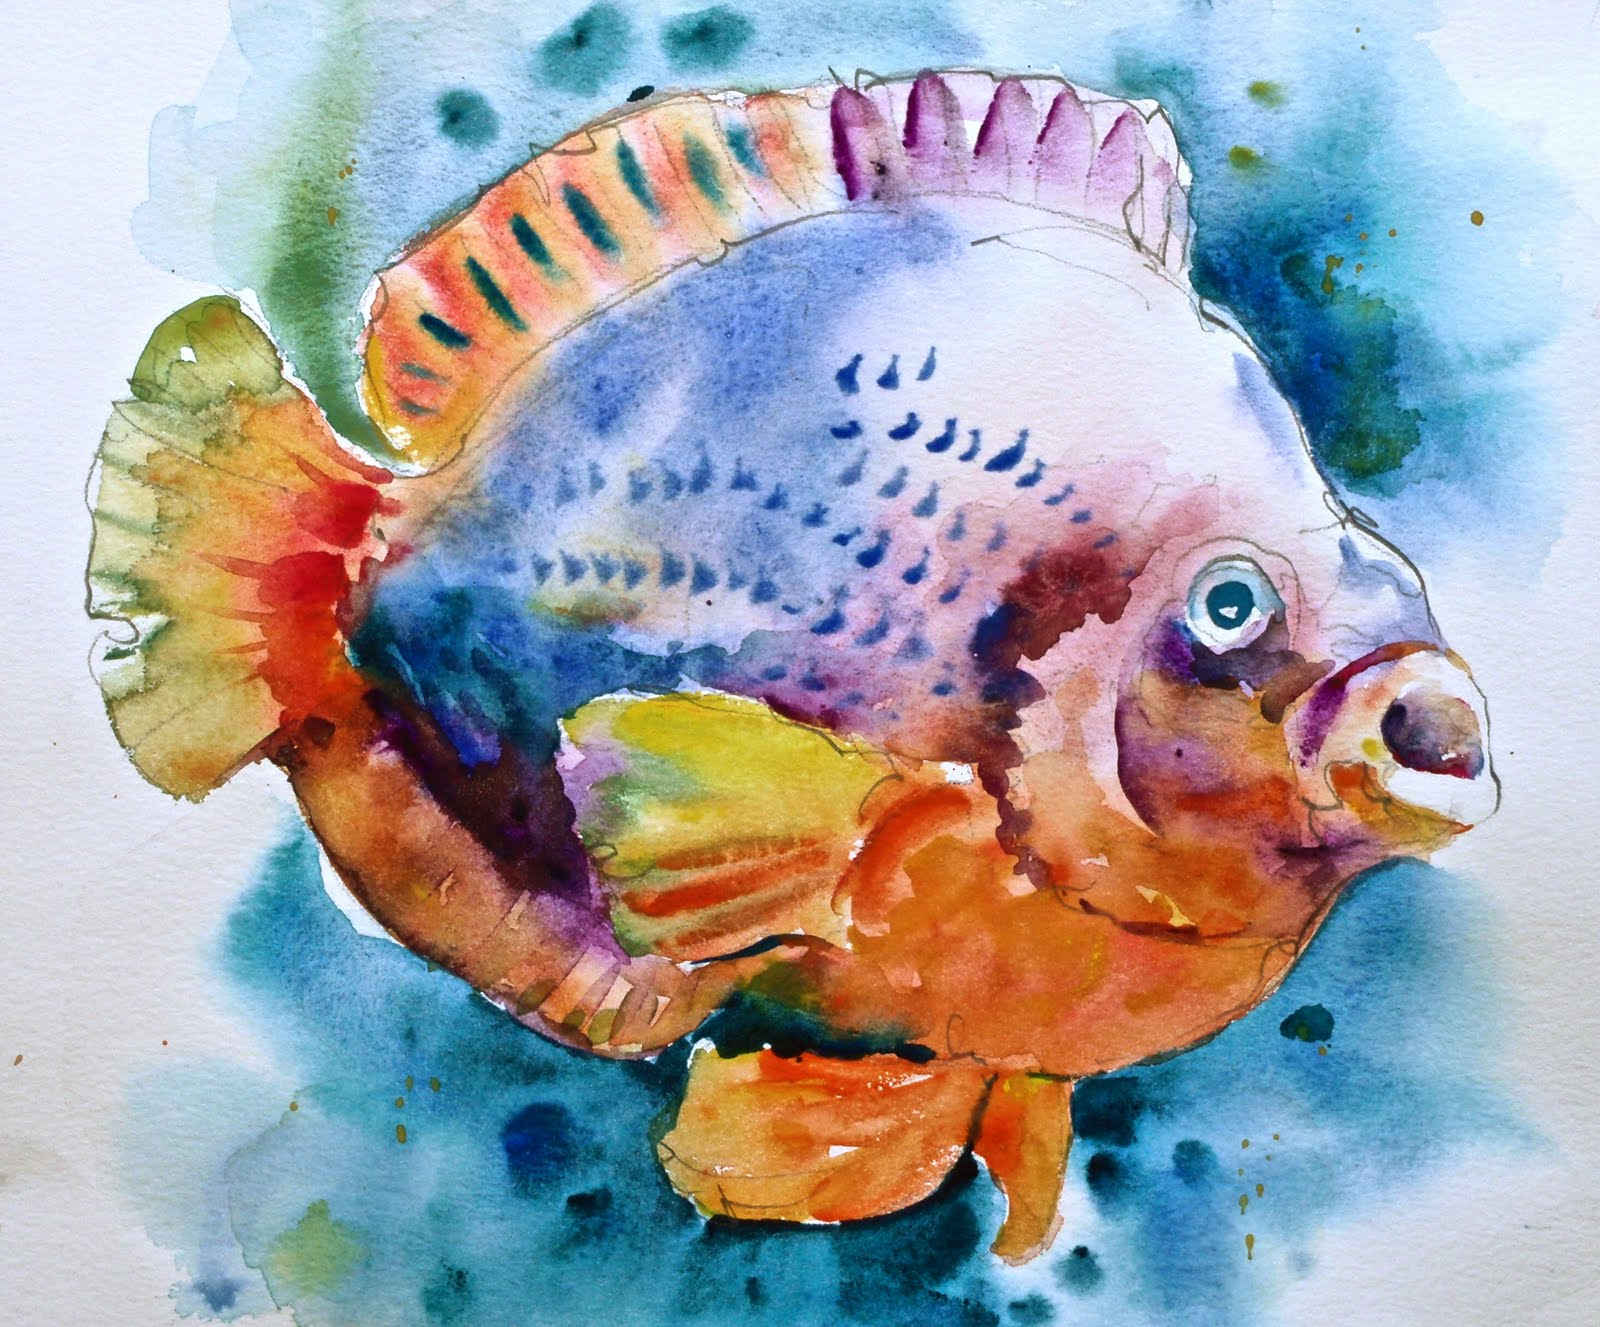 David lobenberg july 2011 for Fish out of water watercolor